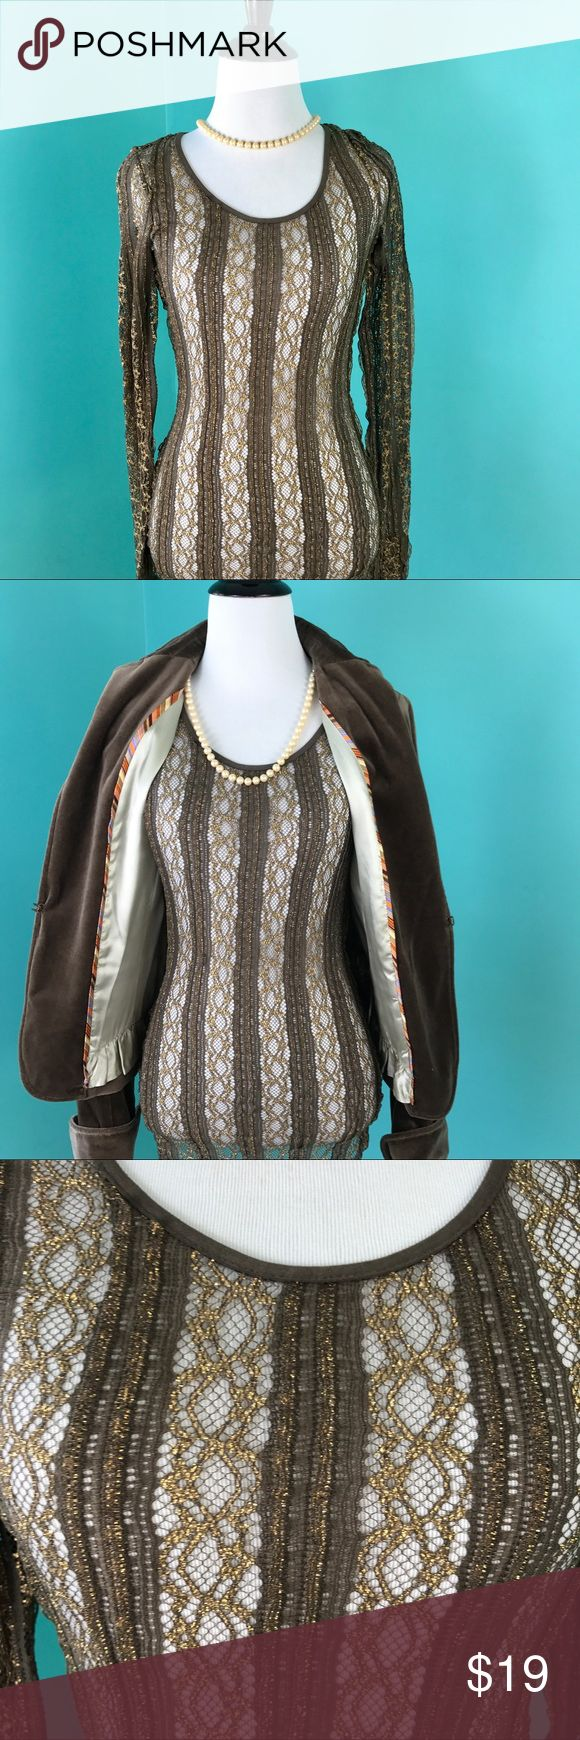 """BKE Boutique Lace Top Brown Gold Metallic Sz Small BKE Boutique Lace Women's Top Long Sleeves Brown Gold Metallic Sz Small Excellent condition.   Made in Canada Size Small Measurements: Armpit-to-armpit: 15"""" Length: 27"""" Sleeves length: 28"""" BKE Tops"""